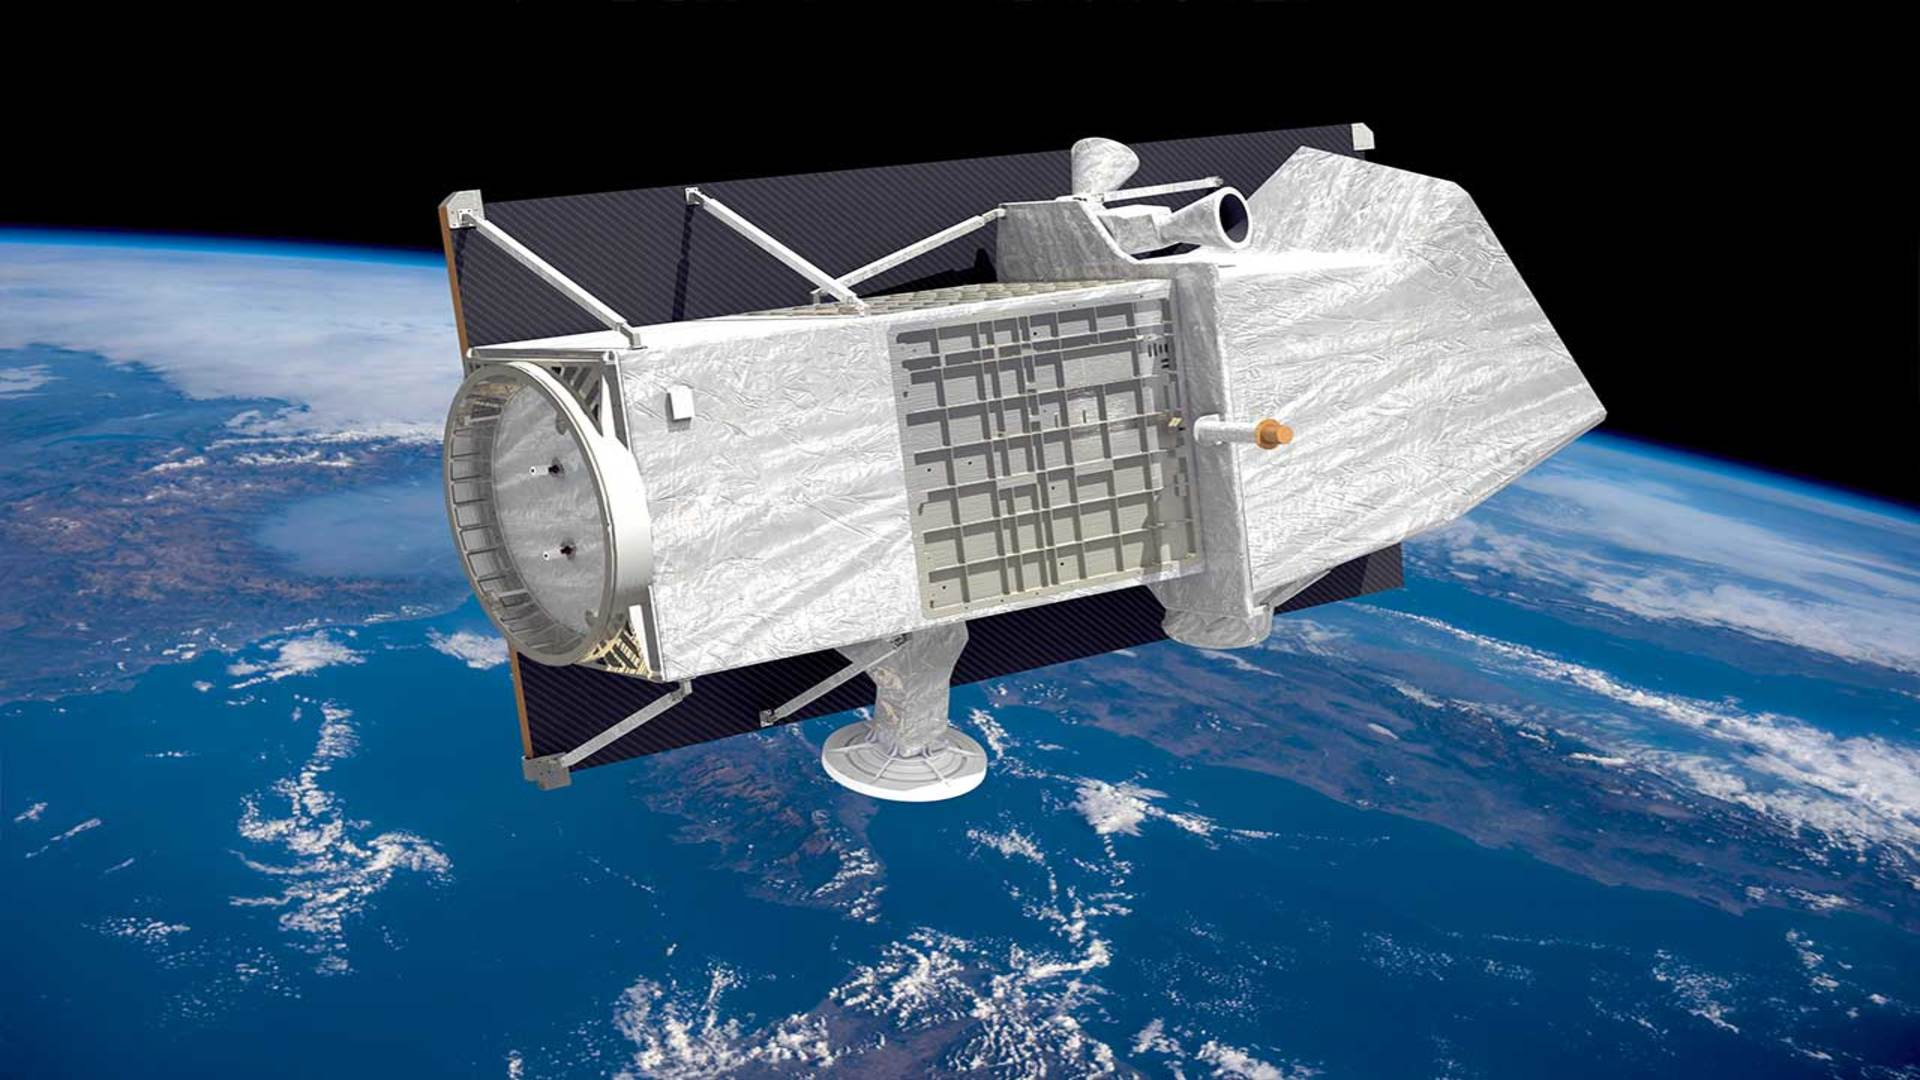 ASI - Hyperspectral Remote Sensing Workshop 2021: PRISMA Mission and beyond